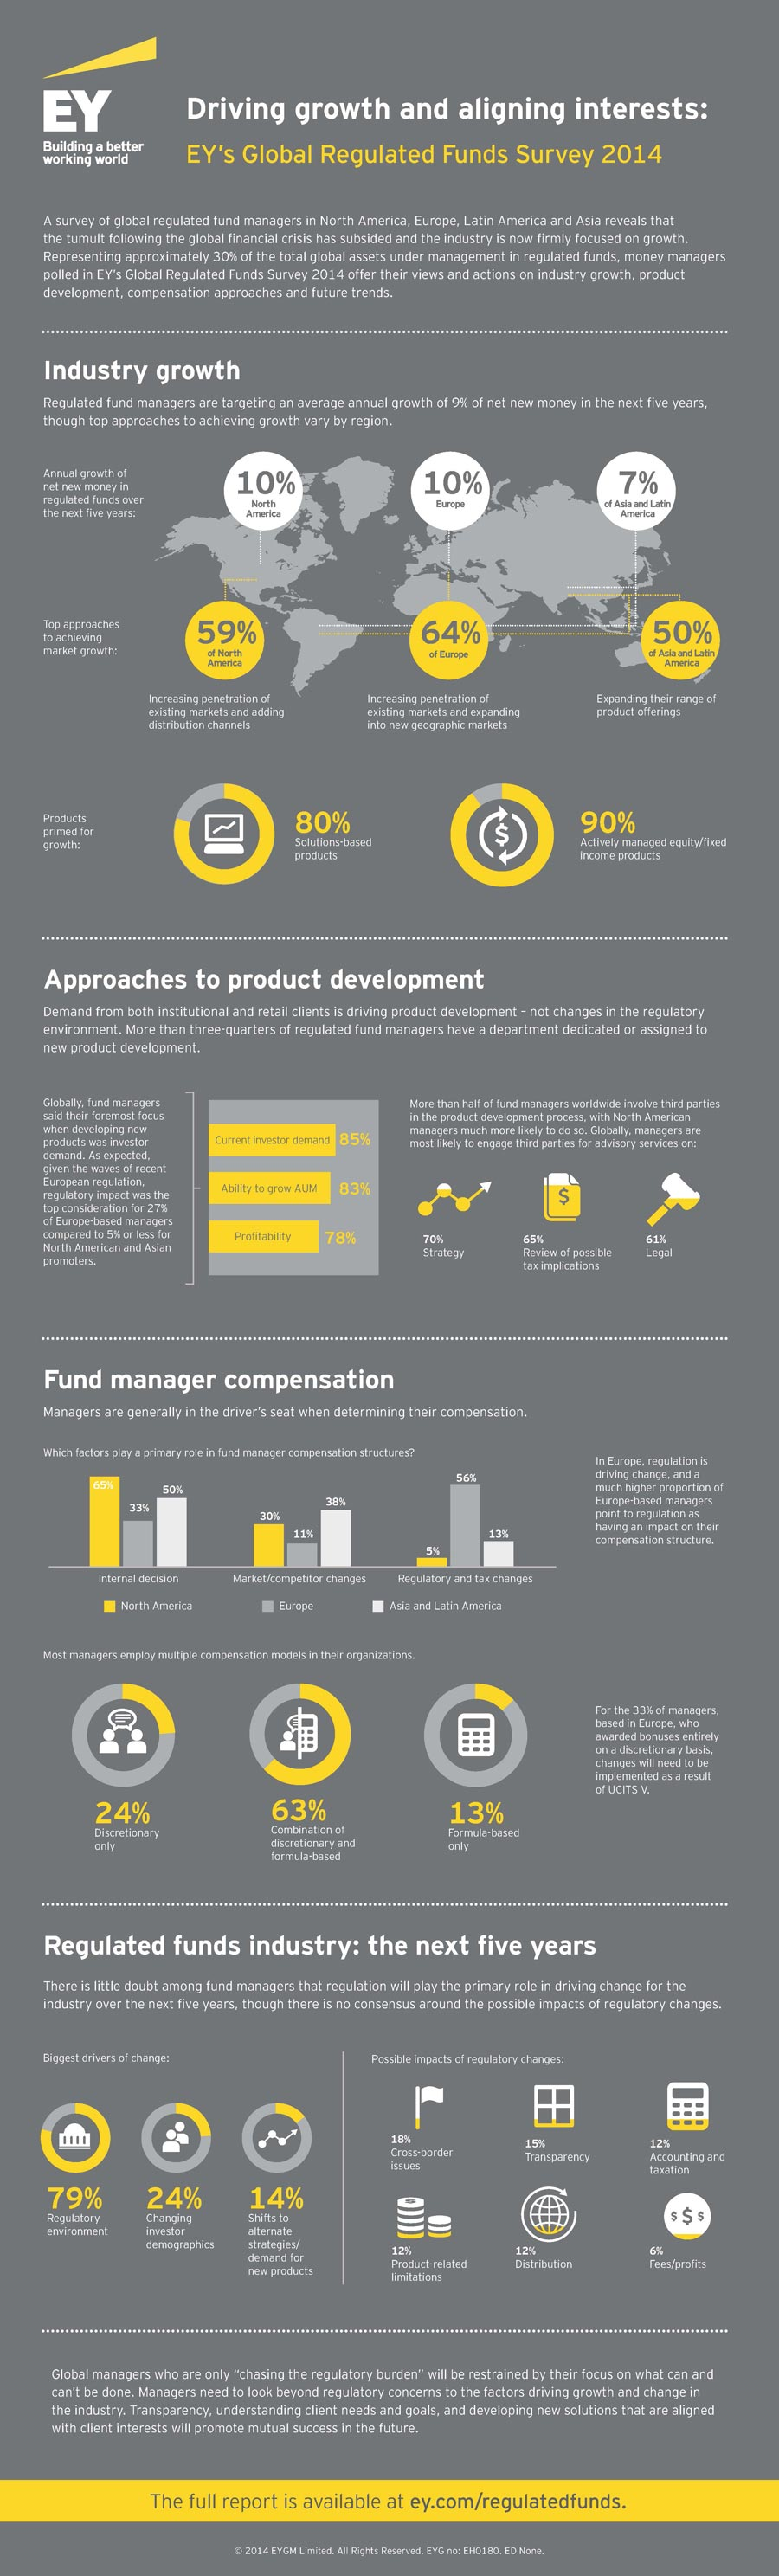 Driving growth and aligning interests: #EY's Global regulated funds survey 2014.